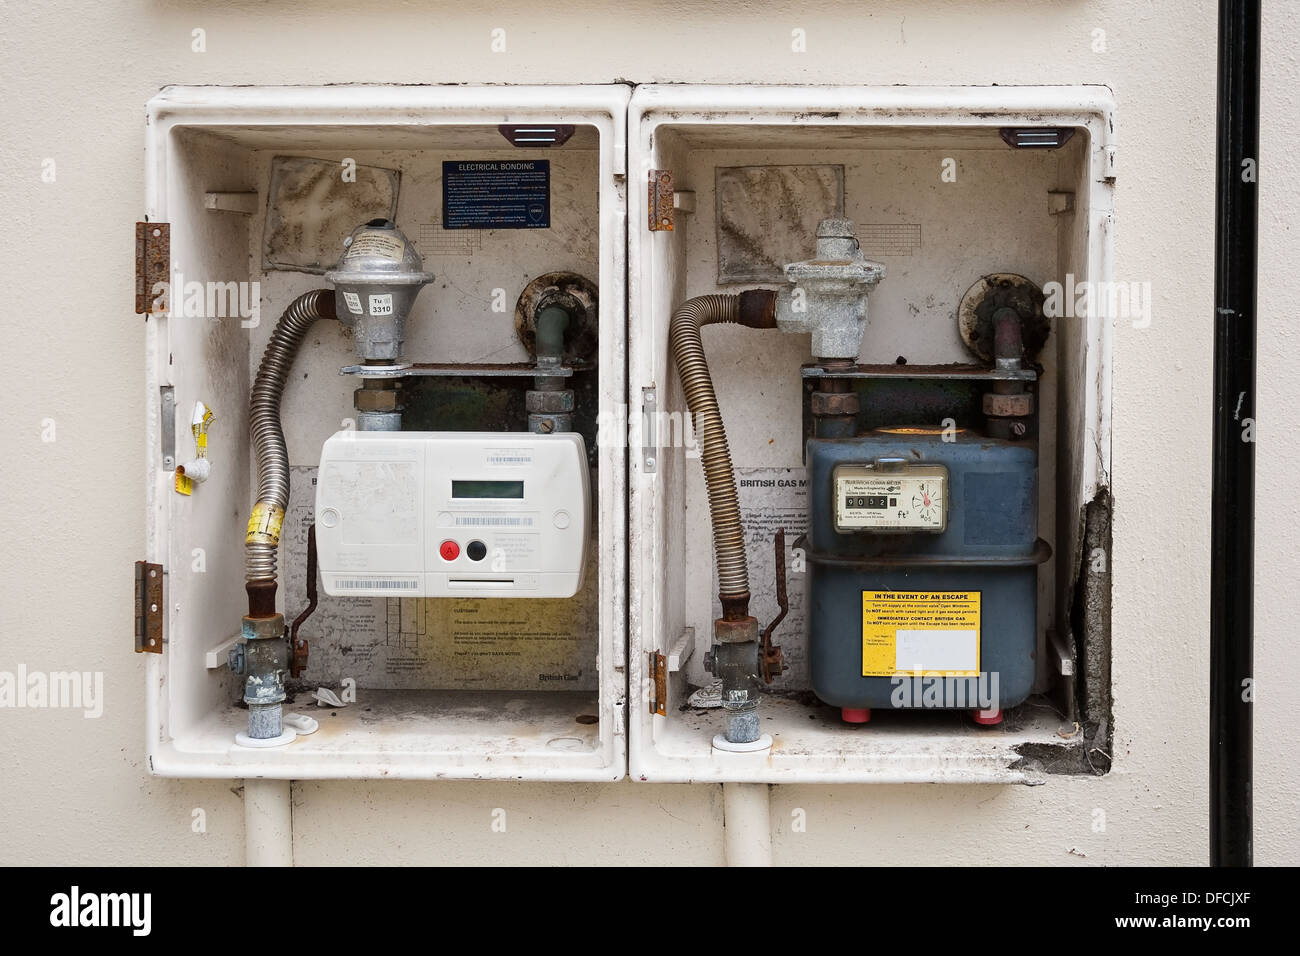 Meter Cabinet Stock Photos & Meter Cabinet Stock Images - Alamy